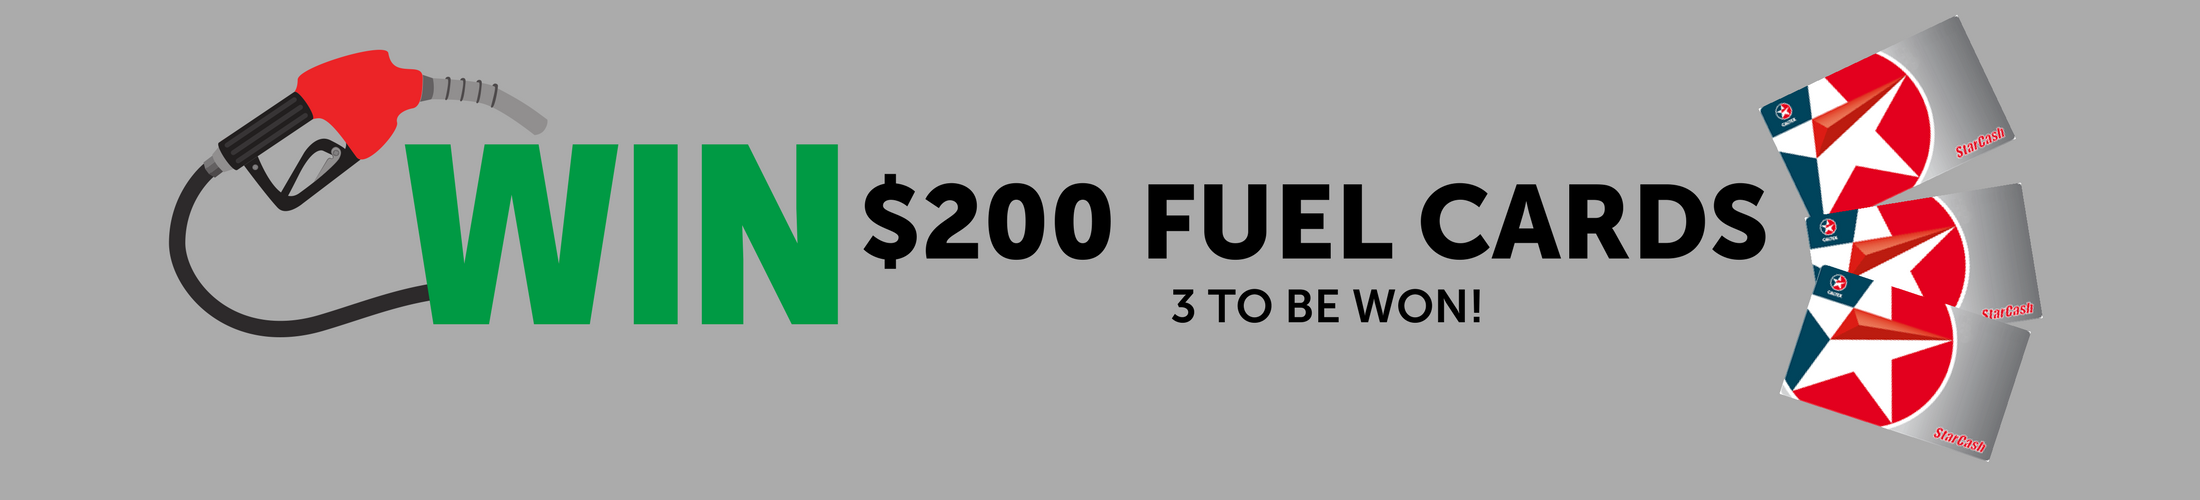 Win Fuel Blog Header Image.png